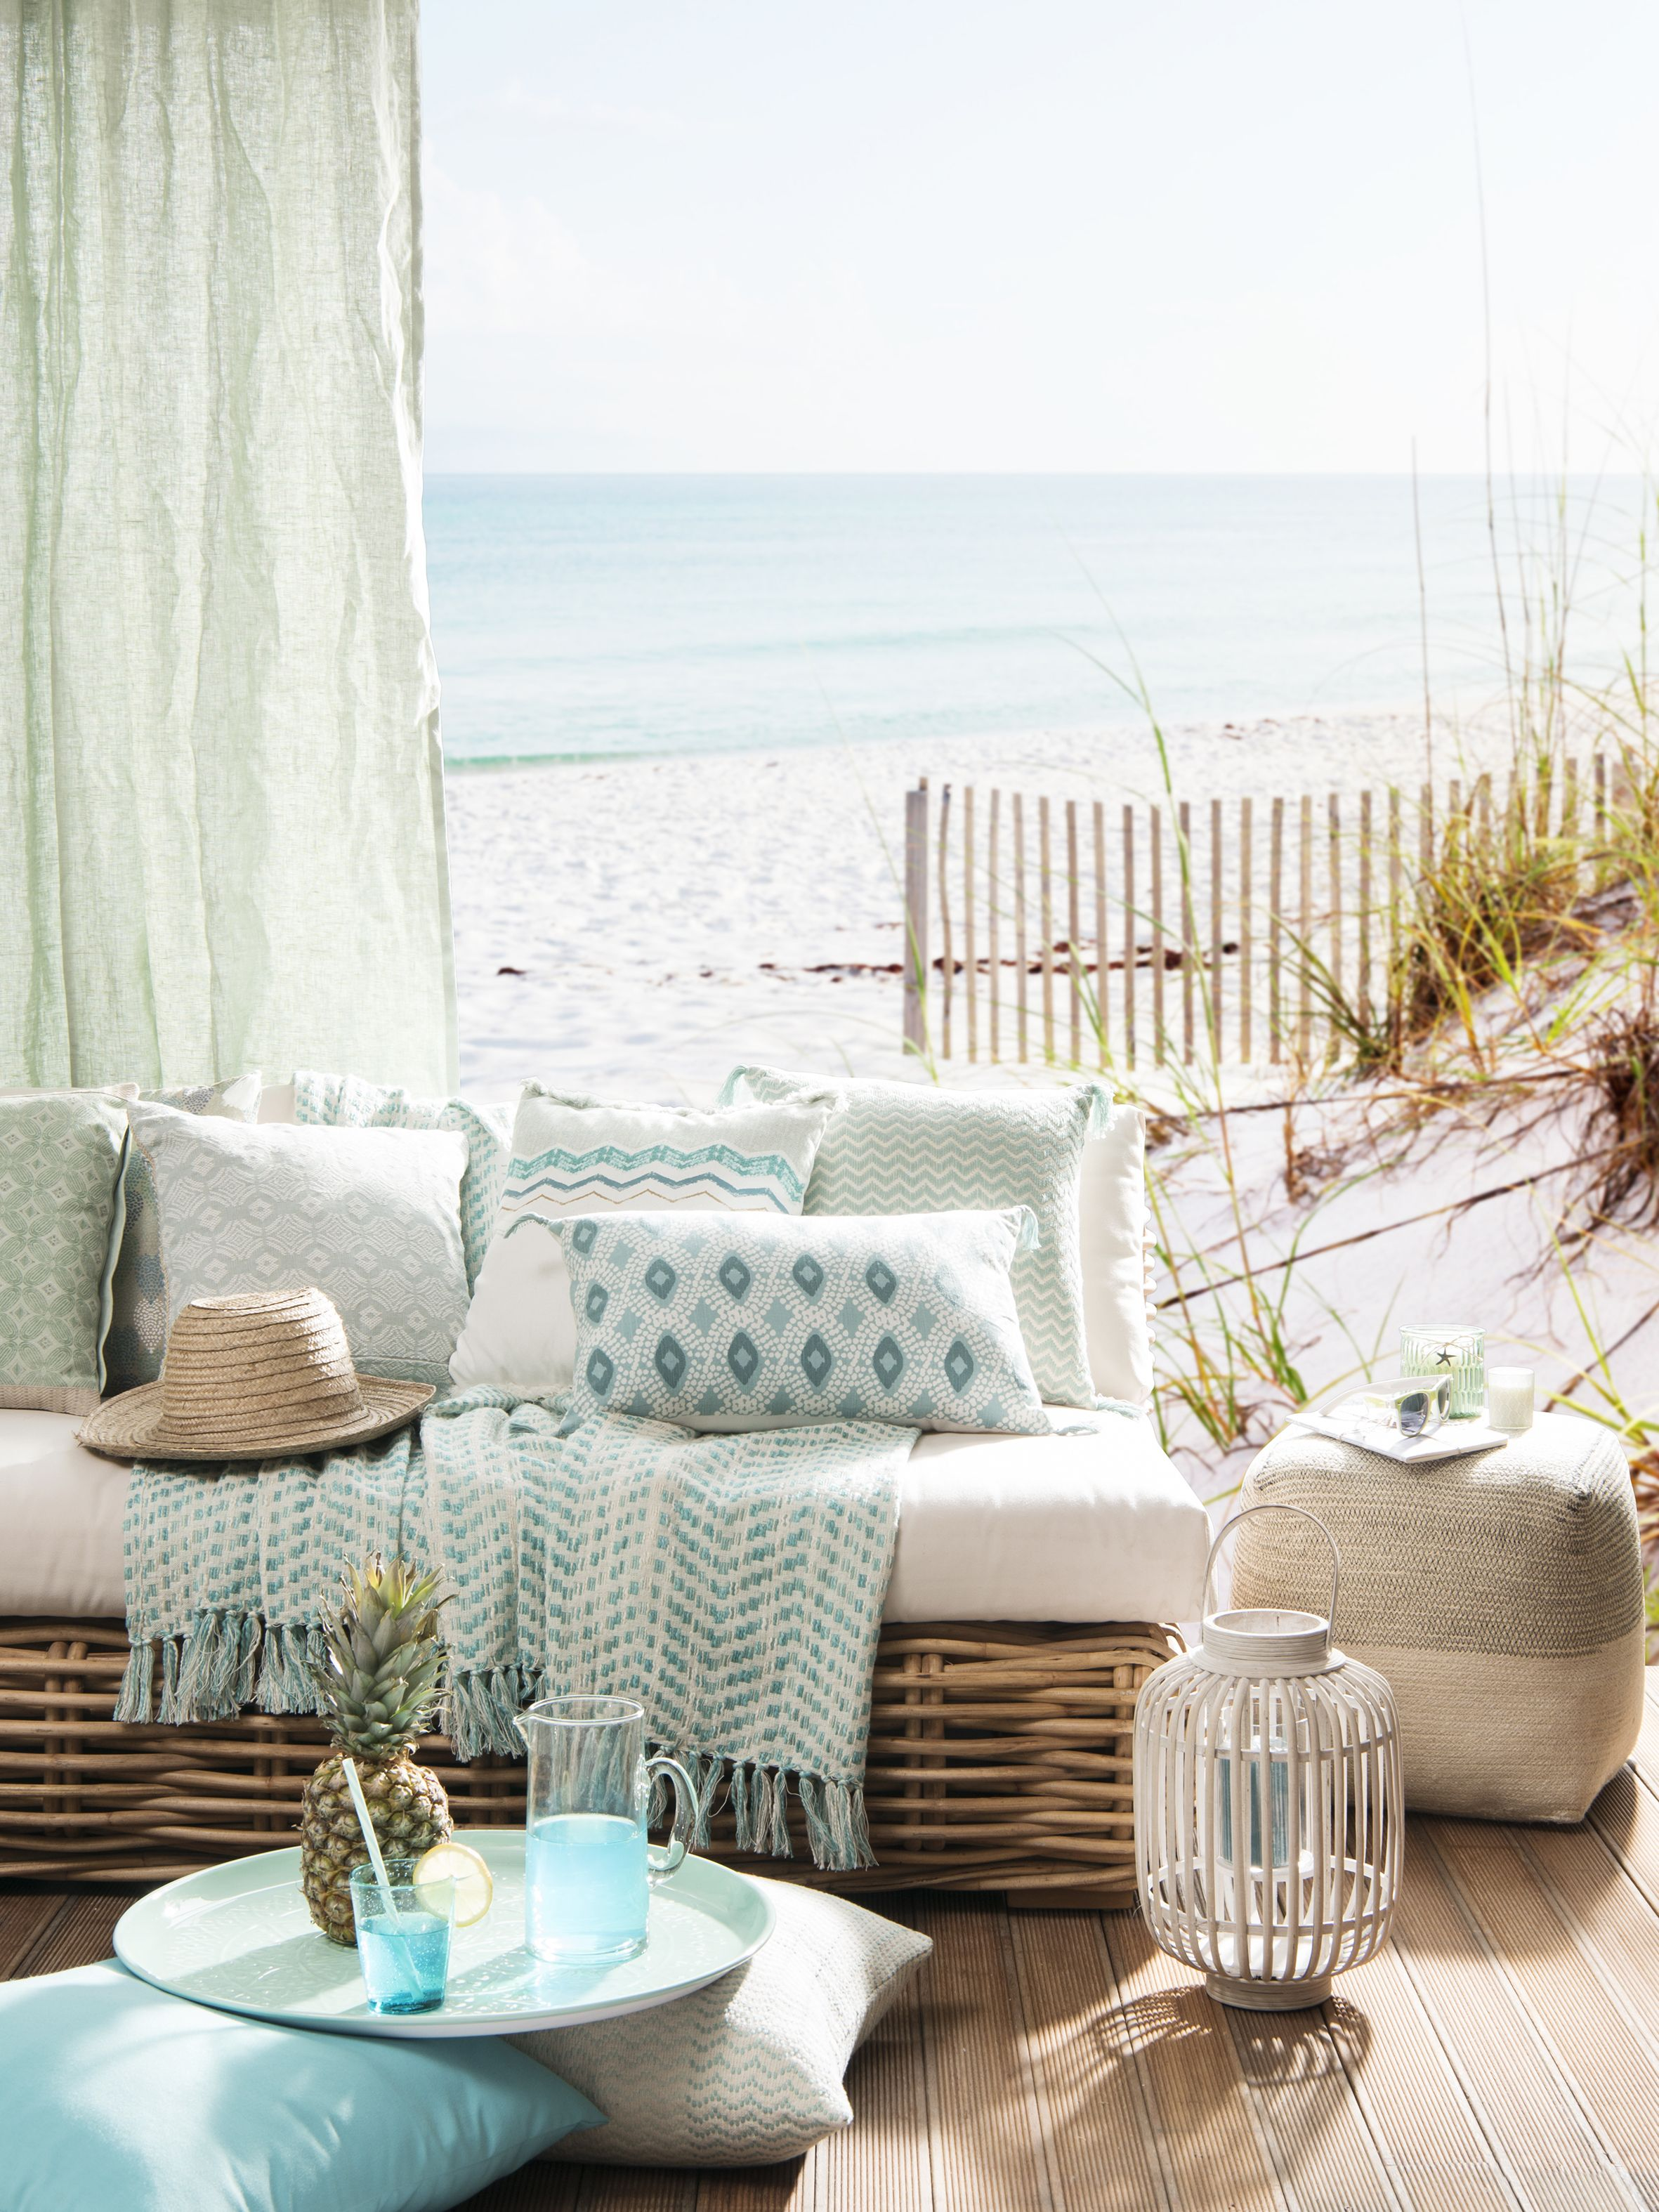 terrasse maison bord de mer id e d co po tique hygge ambiance pur e pour la terrasse au bord du. Black Bedroom Furniture Sets. Home Design Ideas